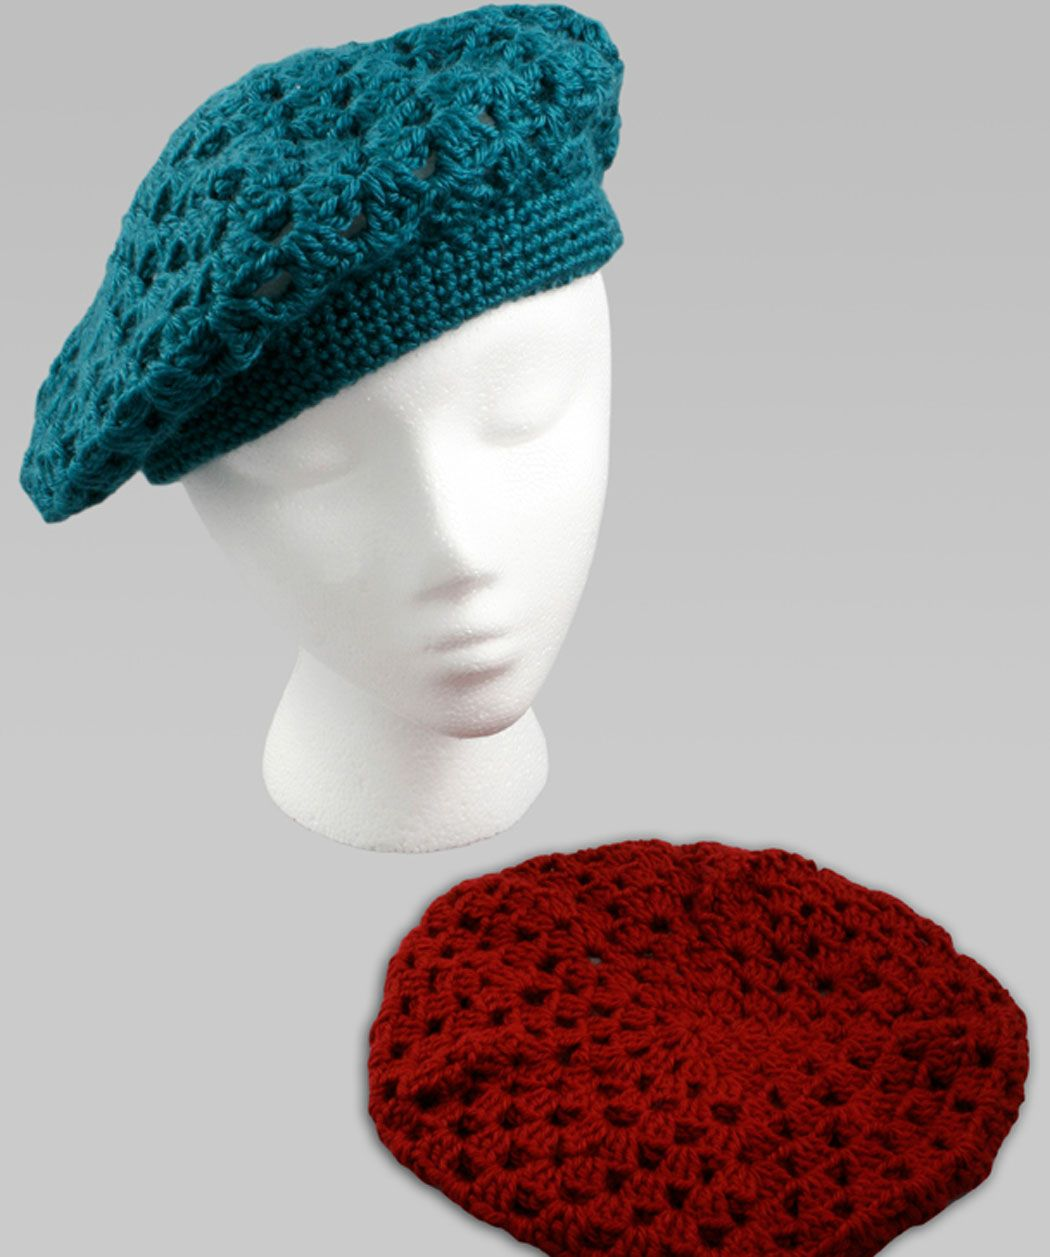 Crochet Beret - Free Download Printable Instructions from Redheart ...